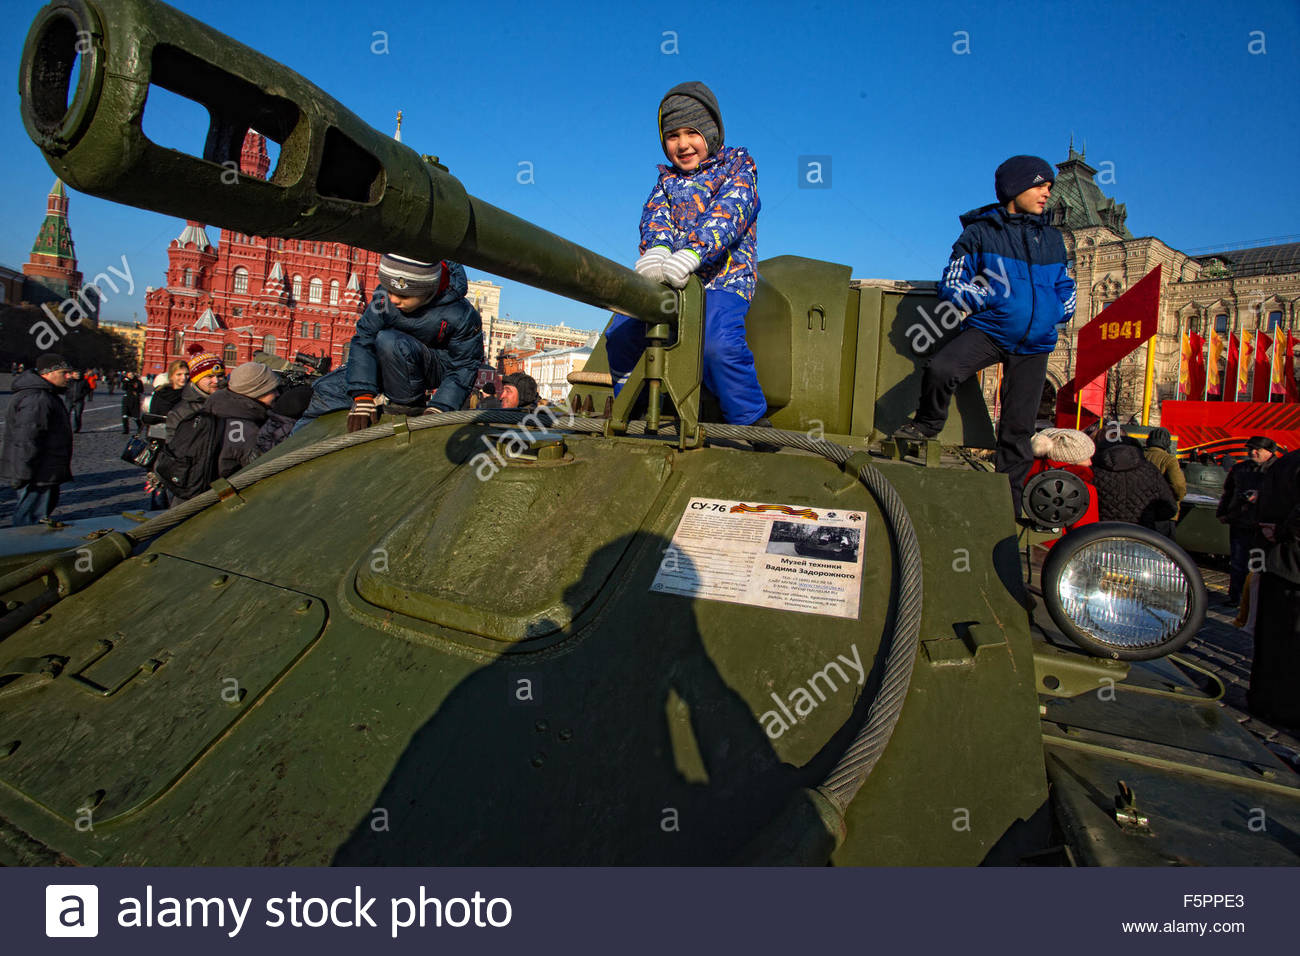 Moskva, Russia. November 7th, 2015. RUSSIA, Moscow: Children are seen on a tank on the Red Square during a parade - Stock Image